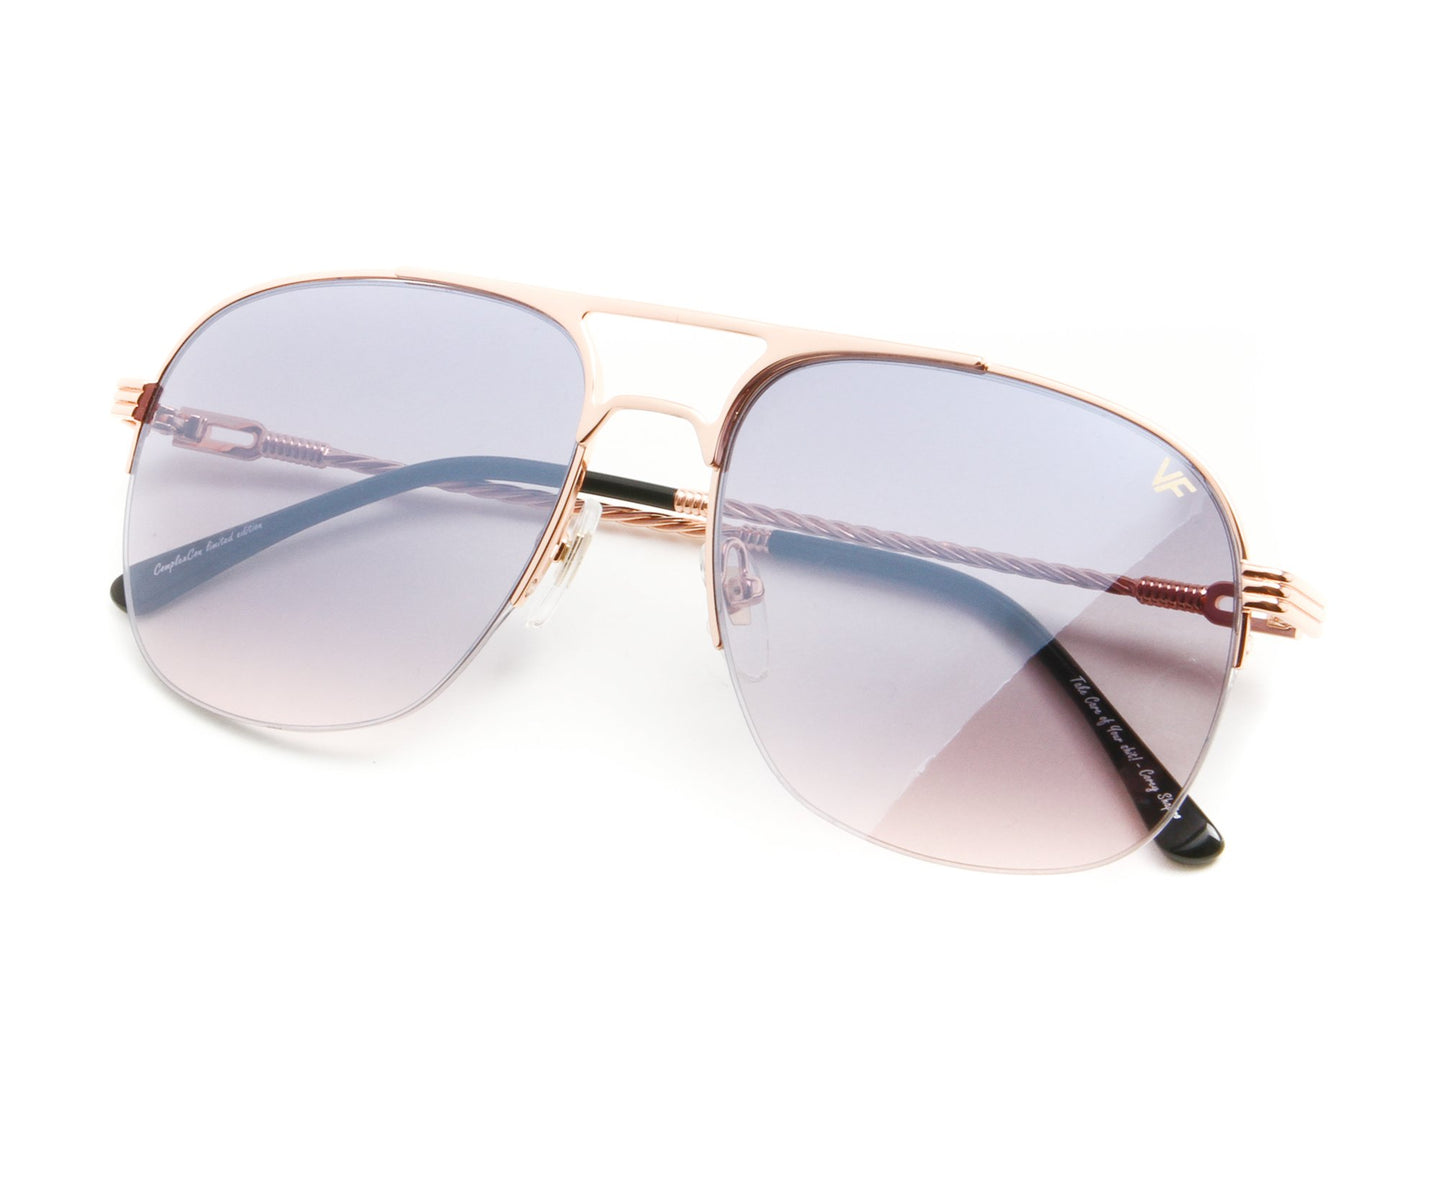 VF Snatch Half Rim 18KT Rose Gold (Black / Pink) Thumb, VF by Vintage Frames , glasses frames, eyeglasses online, eyeglass frames, mens glasses, womens glasses, buy glasses online, designer eyeglasses, vintage sunglasses, retro sunglasses, vintage glasses, sunglass, eyeglass, glasses, lens, vintage frames company, vf